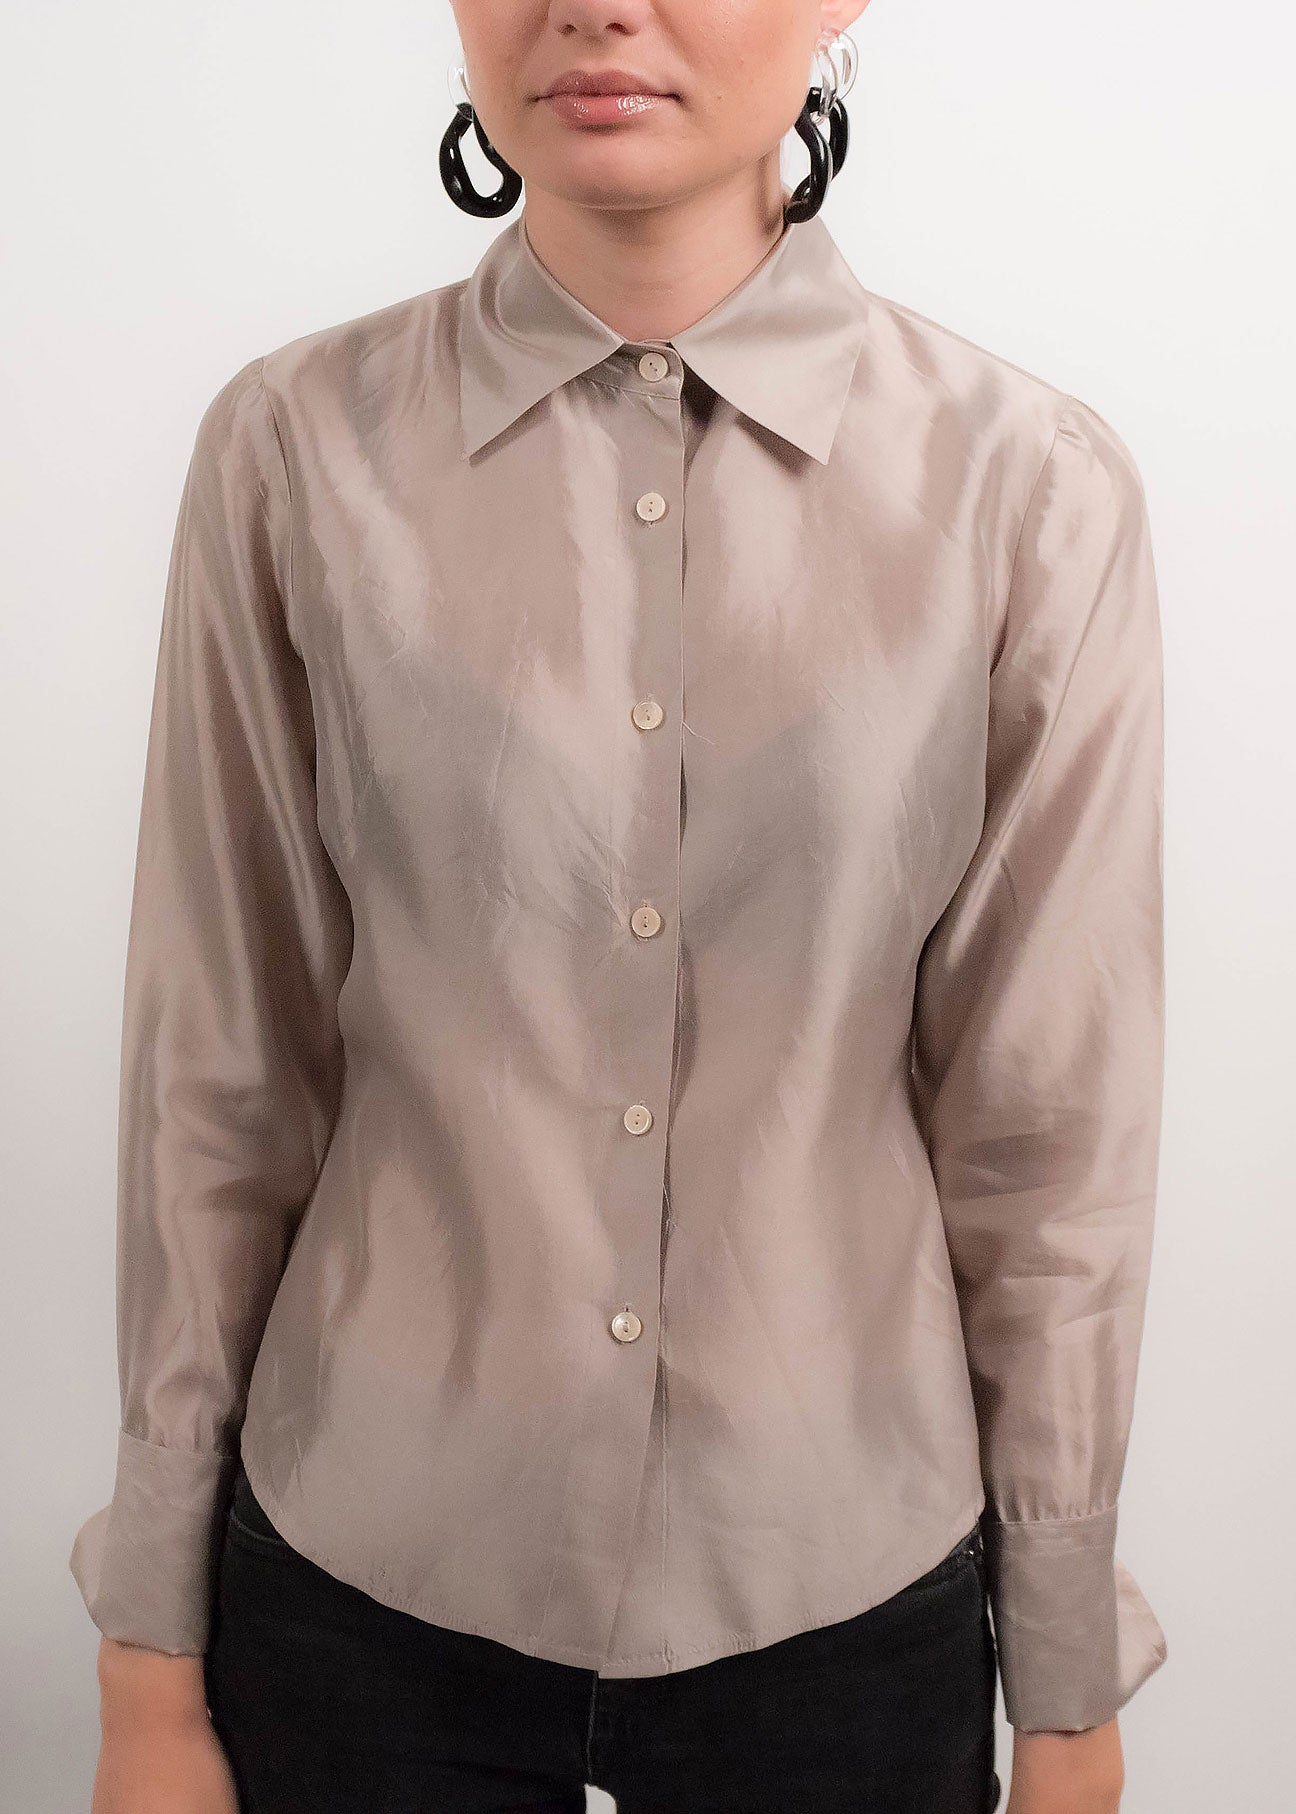 90s Silver Metallic Silk Blouse